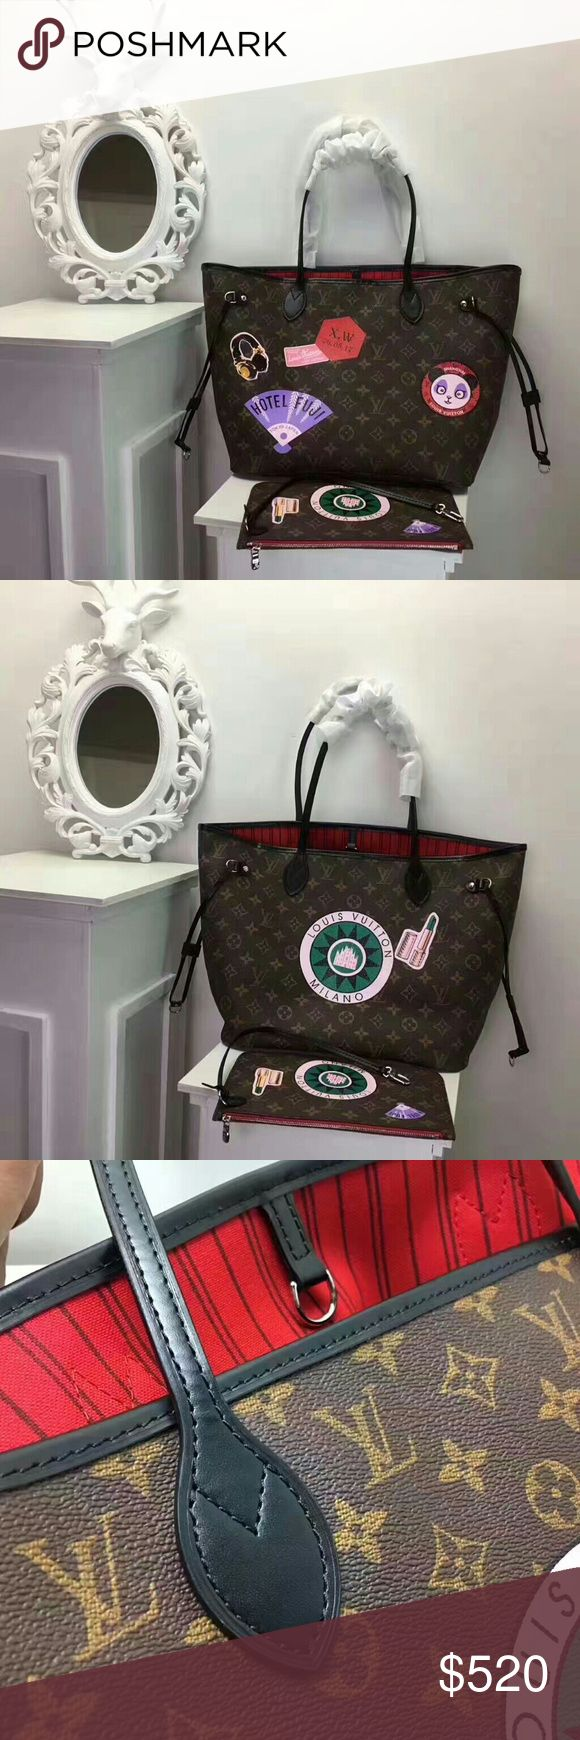 "Read Description new year gifts Handbags Bags Price reflect authenticity, Pls comment your email to get more details and new discounts. To see more photos in Instagram ID:""bellaluxuryzone"" pls comment your email or contact us so that we can give you new discounts and  show you many good reviews. WhatsAPP: +8617128079630 or Email: toplvbags@outlook.com   Pls comment your Email or Whatsapp number to get new discounts. thank you louis vuitton Bags"